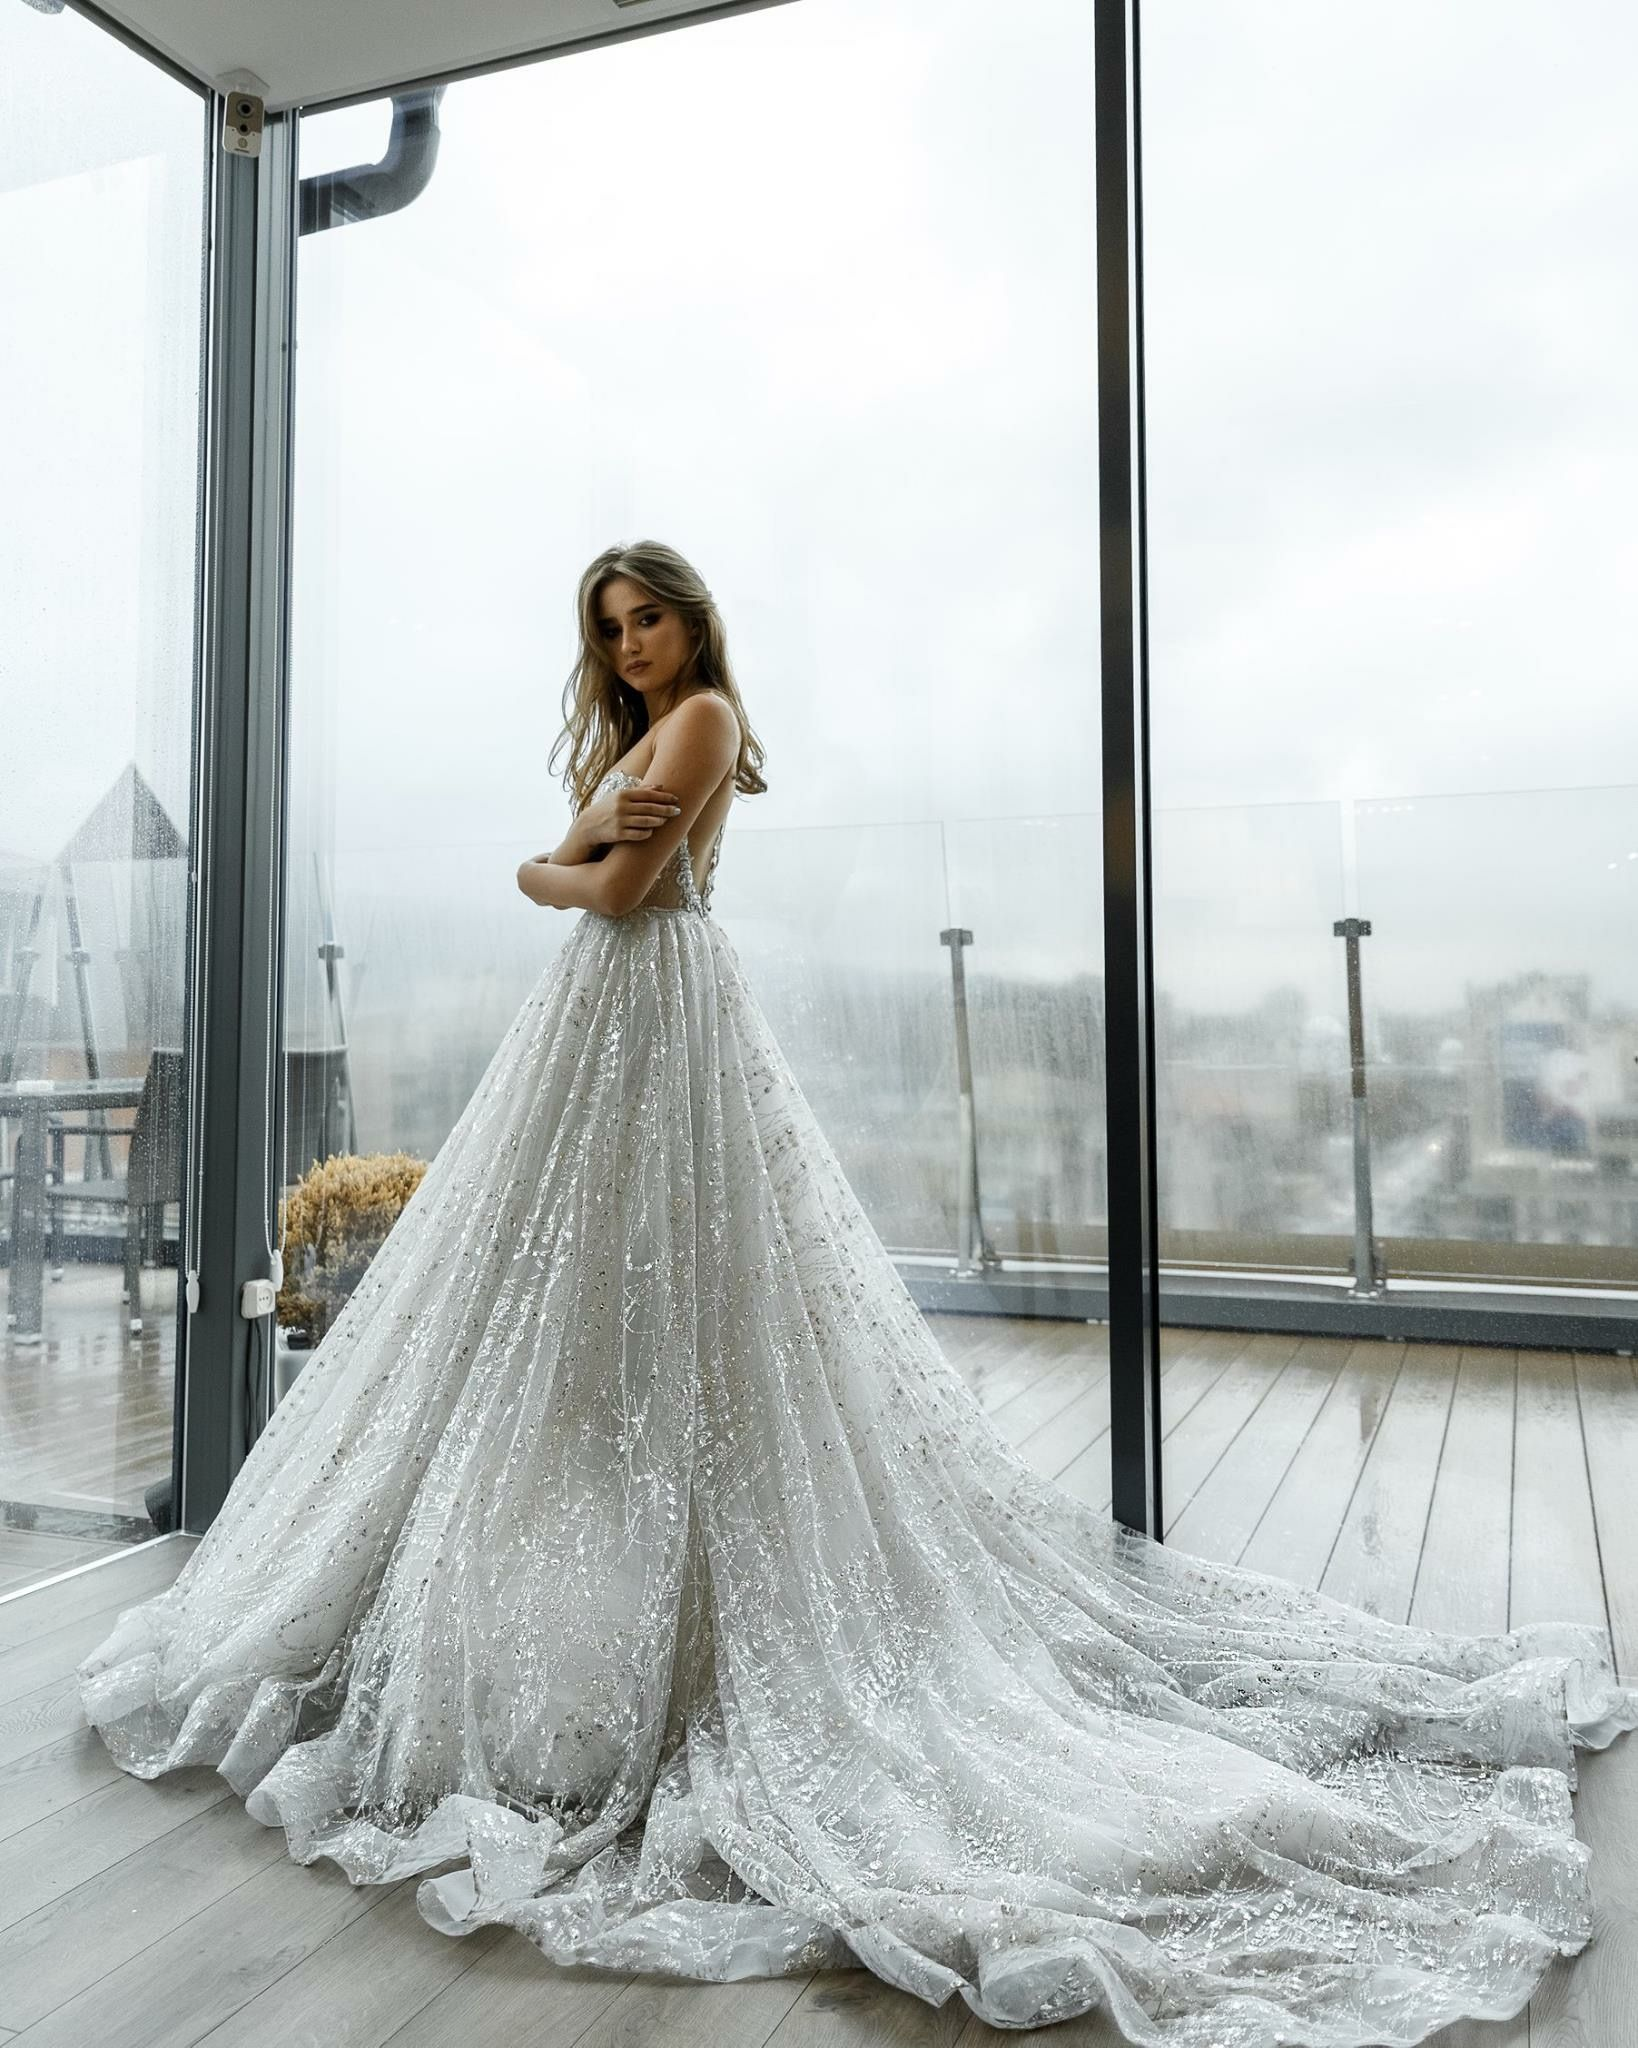 Wear to wedding dresses  Pin by Reyna Ccansever on gelinlik  Pinterest  Wedding dress